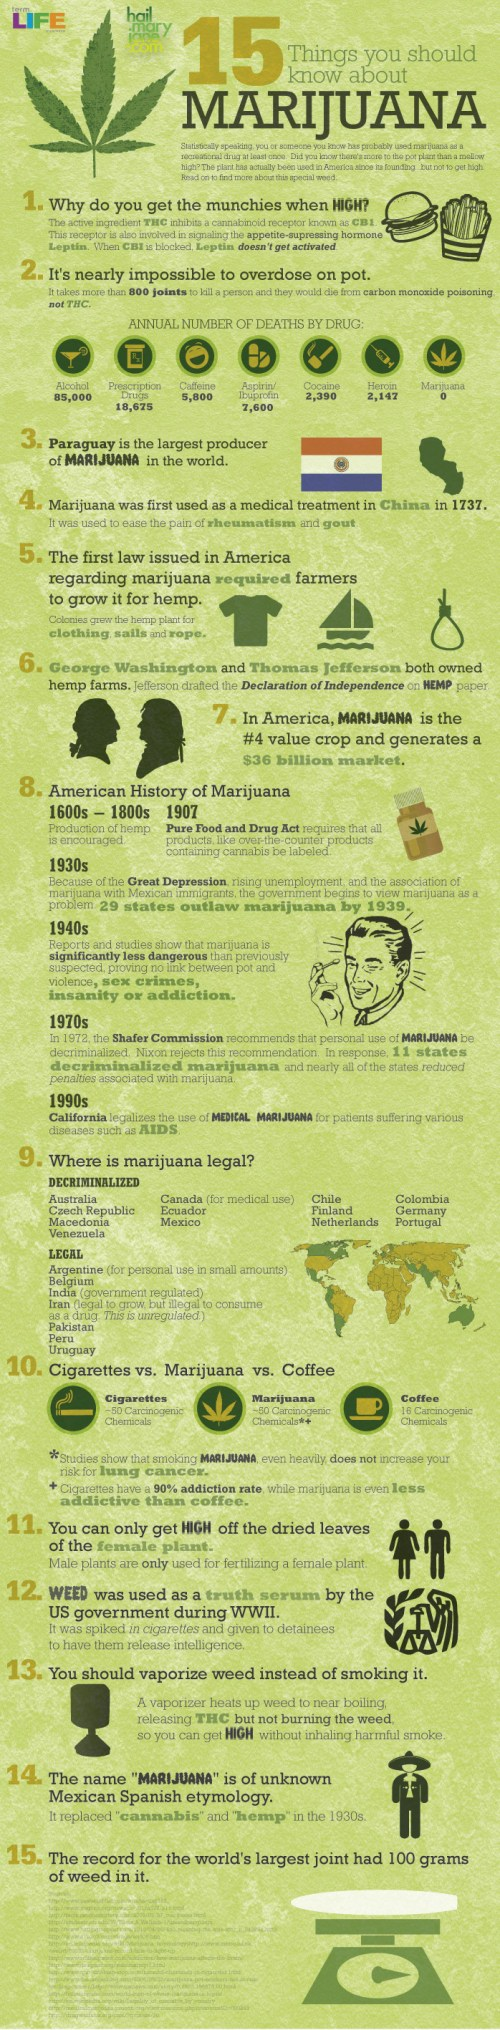 15 Things Your Should Know about Marijuana